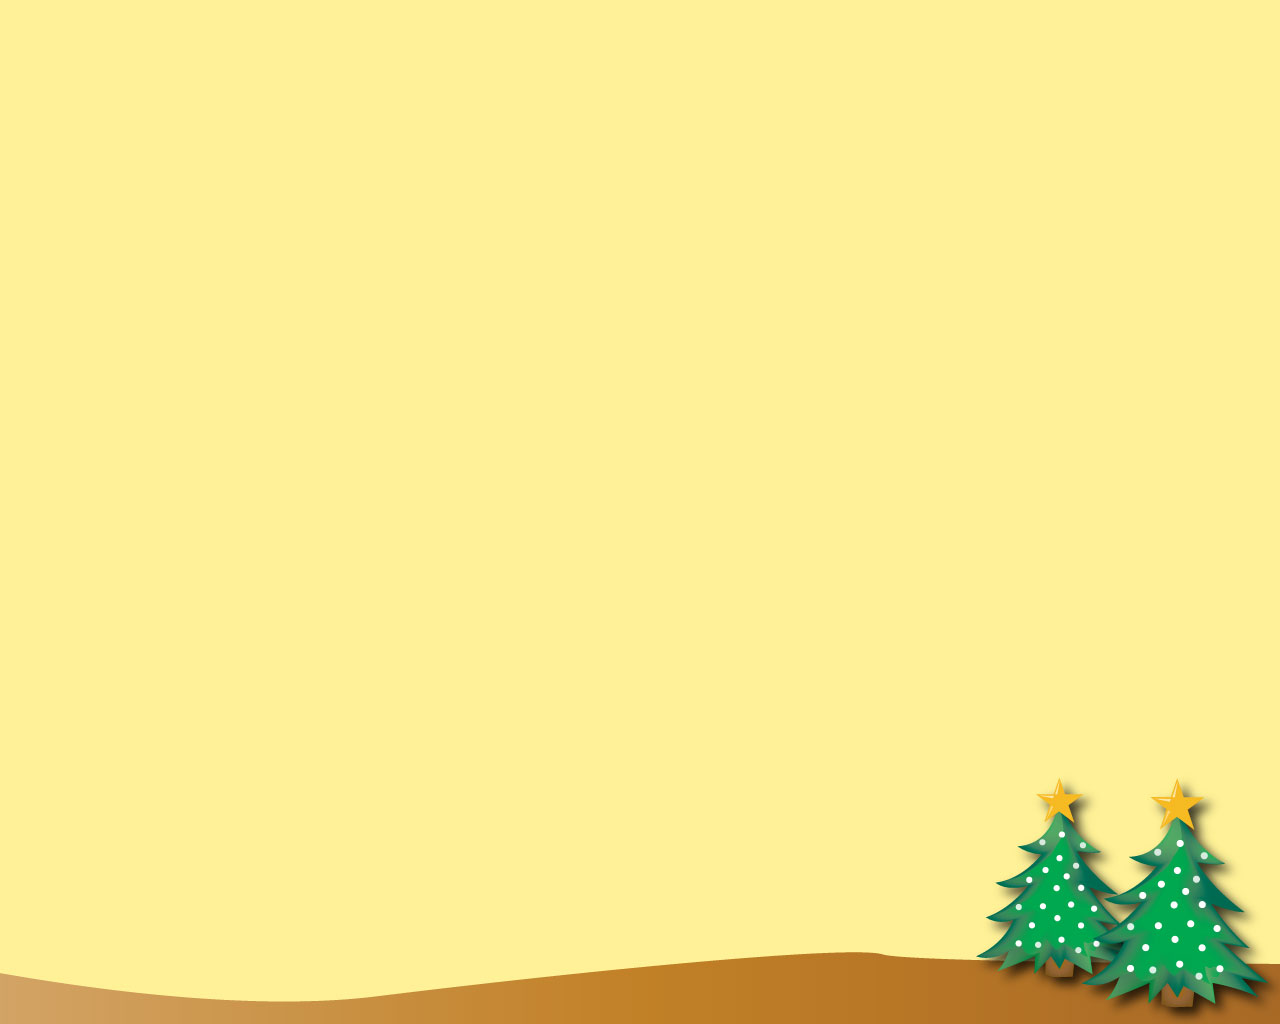 Background clipart powerpoint. Christmas